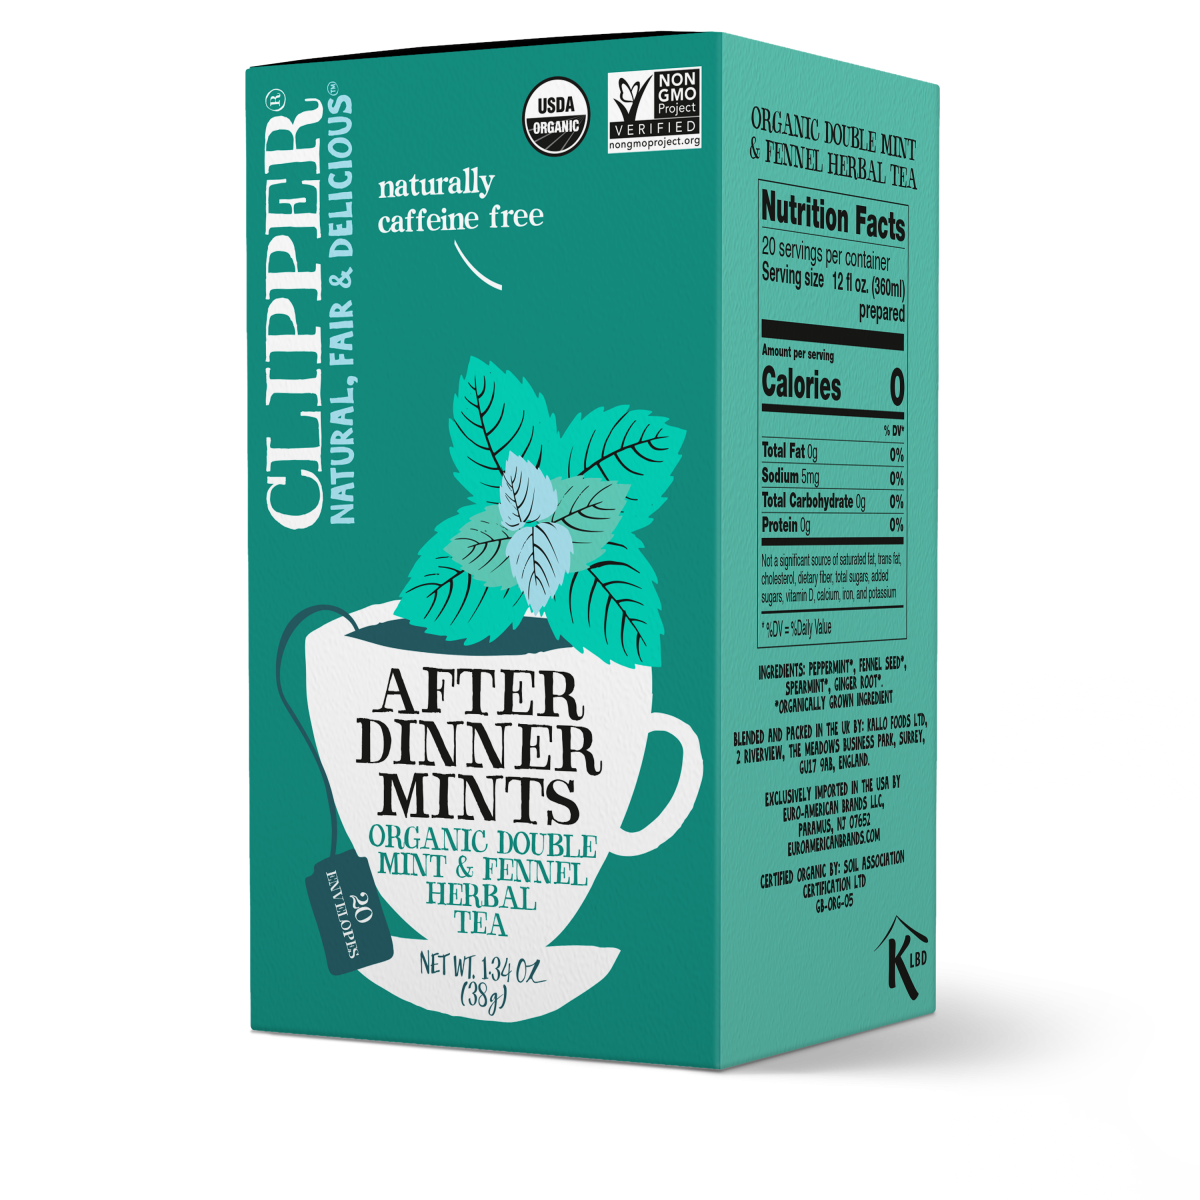 After Dinner Mints organic